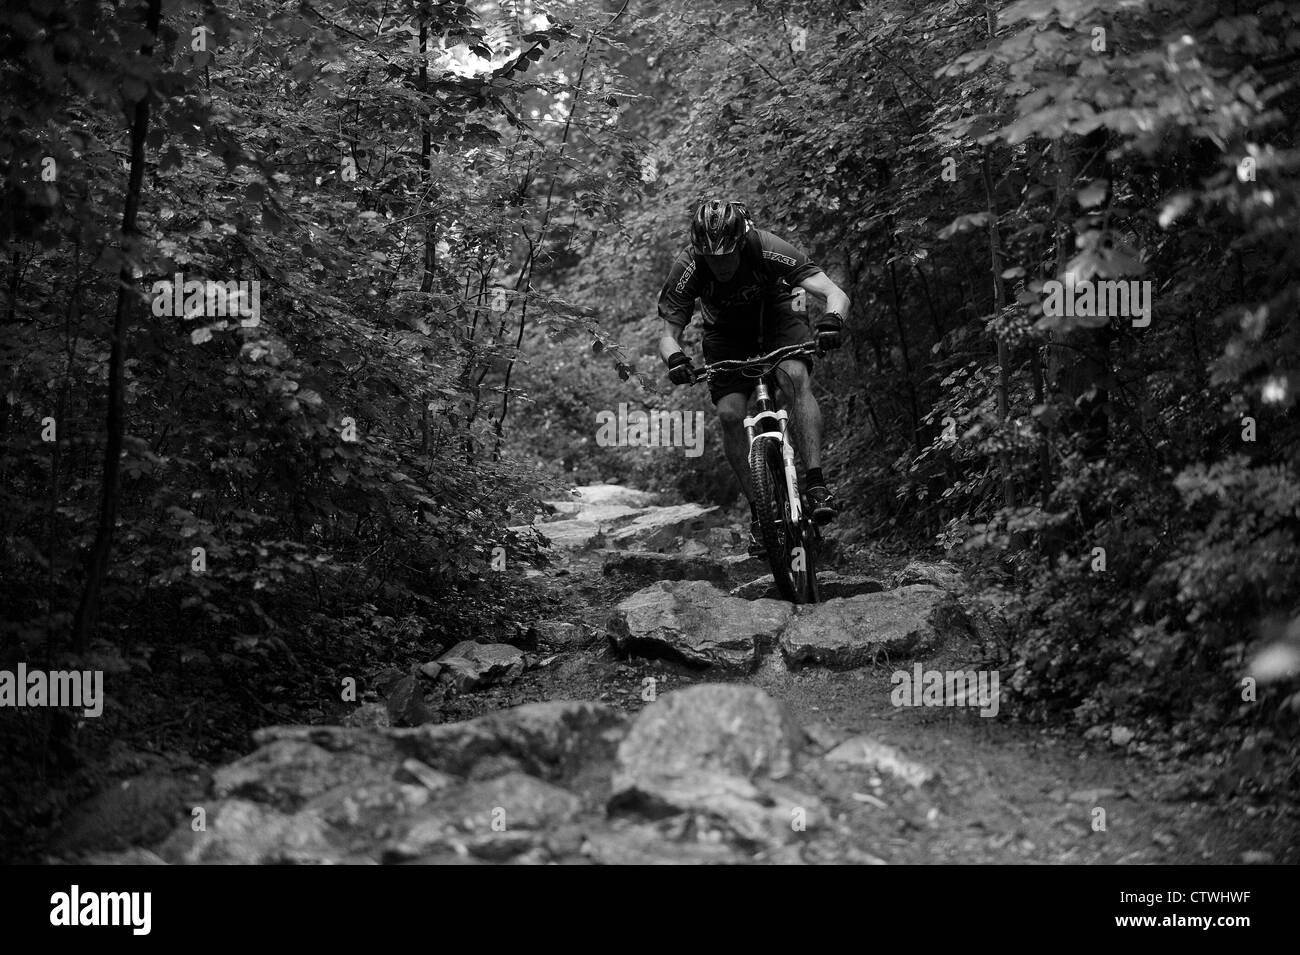 A mountain biker rides a rocky trail at Ashton Court in Bristol. - Stock Image